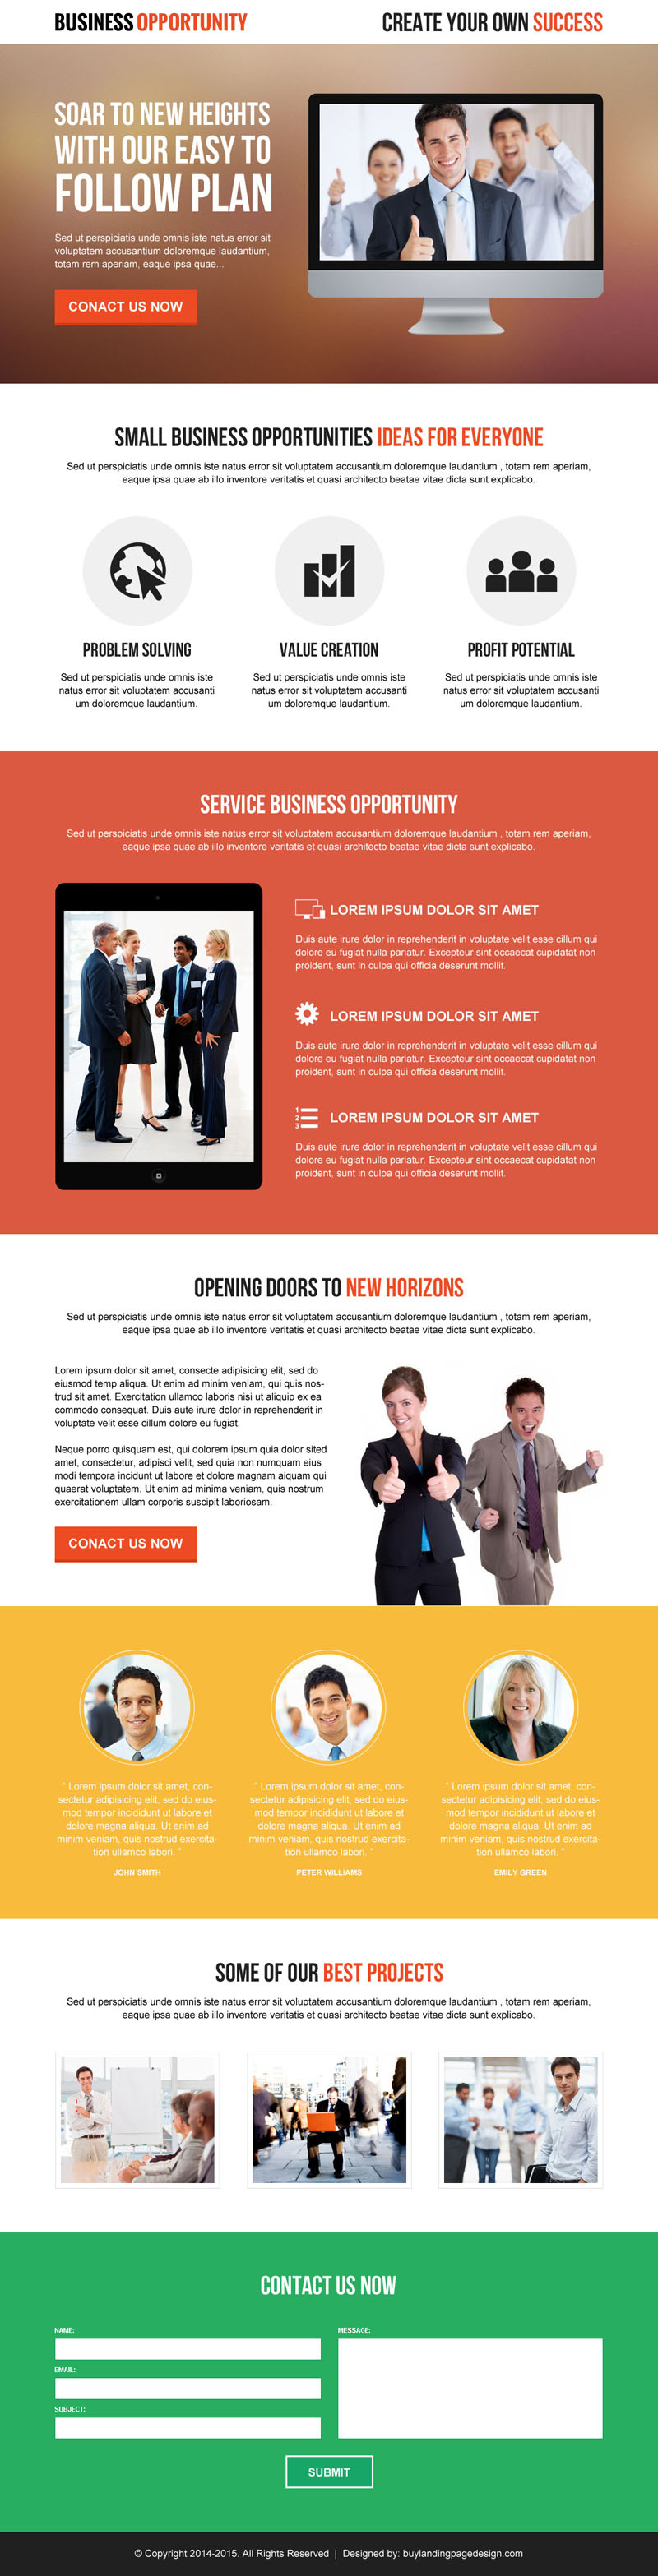 professional-business-solutions-cta-responsive-landing-page-design-templates-to-boost-your-business-005